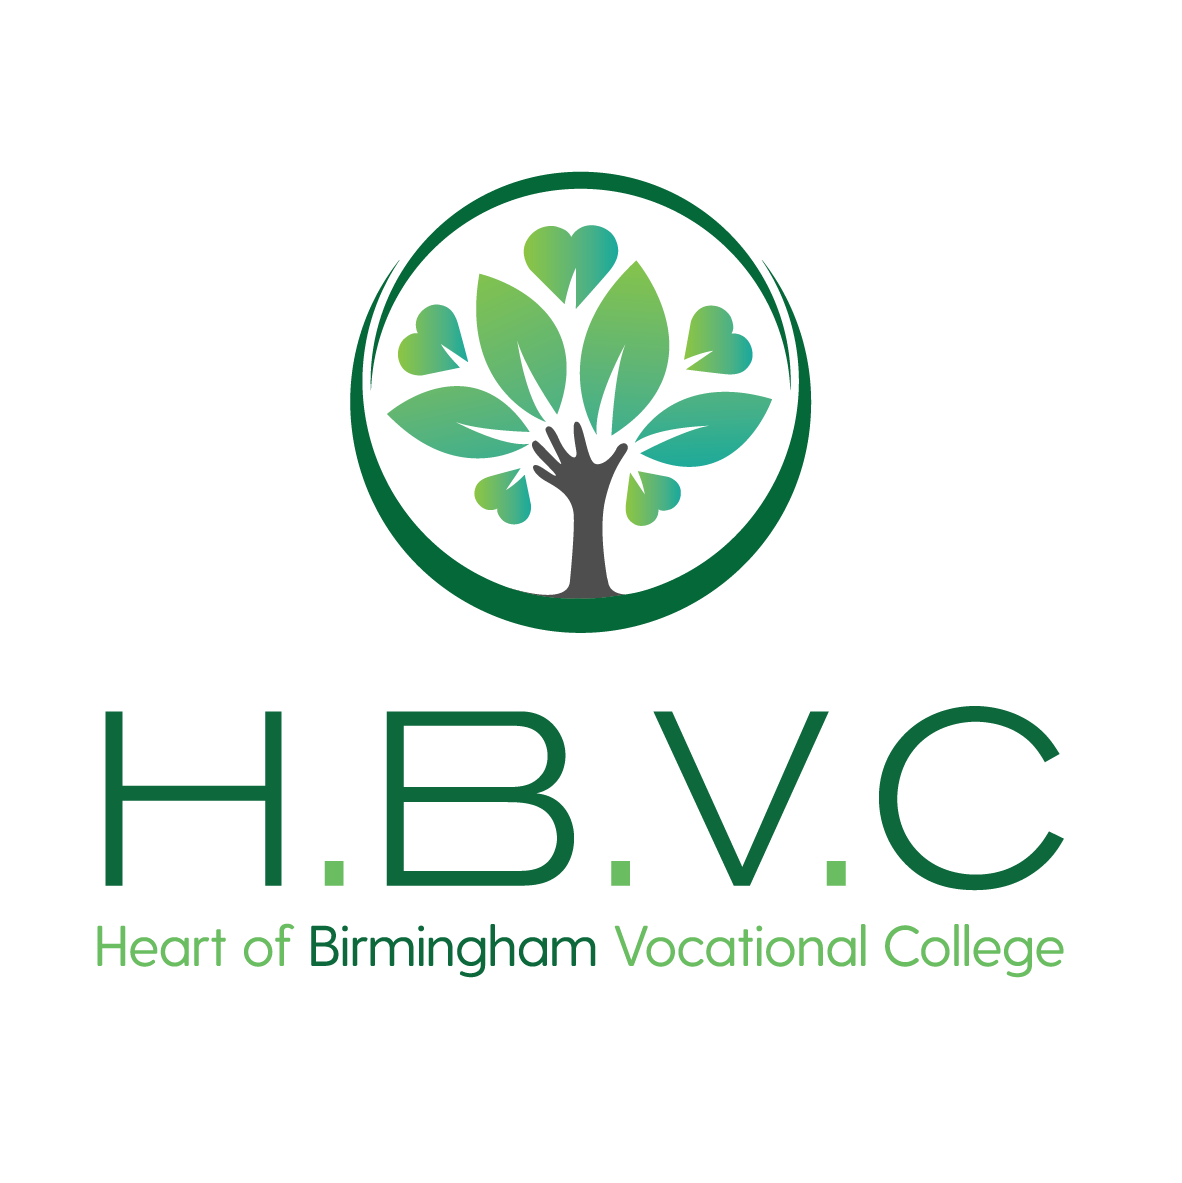 The logo of Heart of Birmingham Vocational College